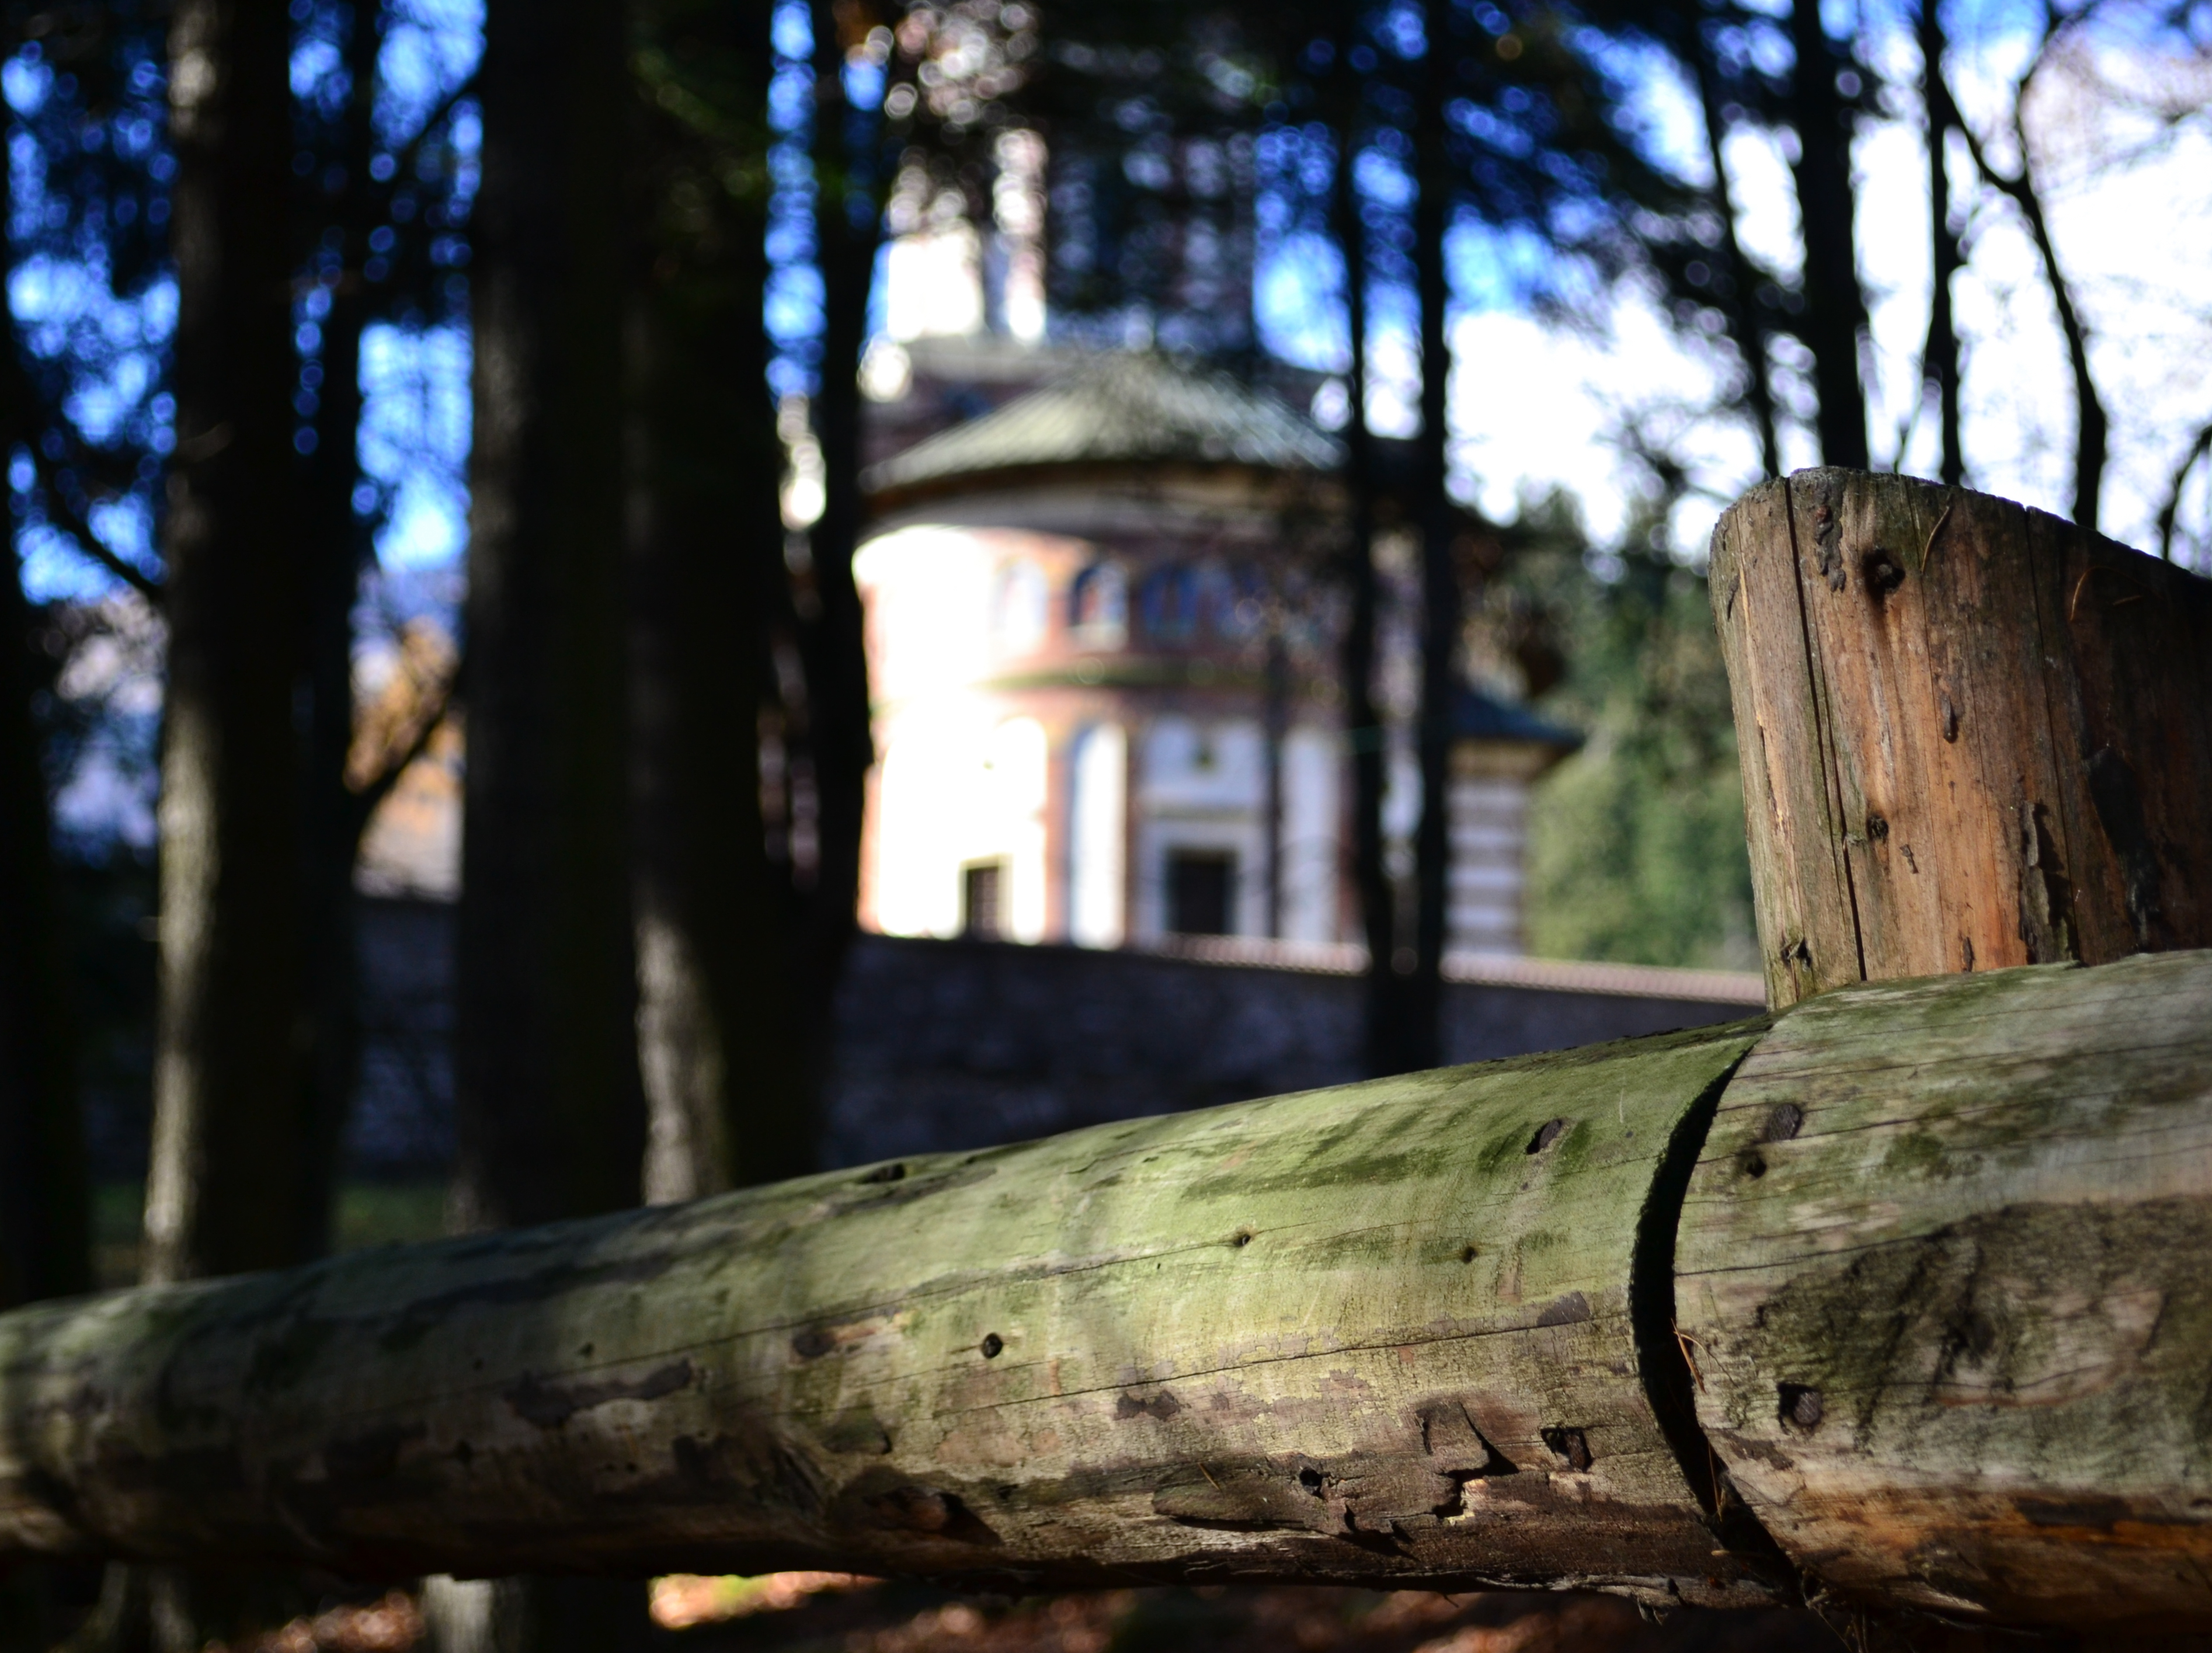 Church in the forest photo